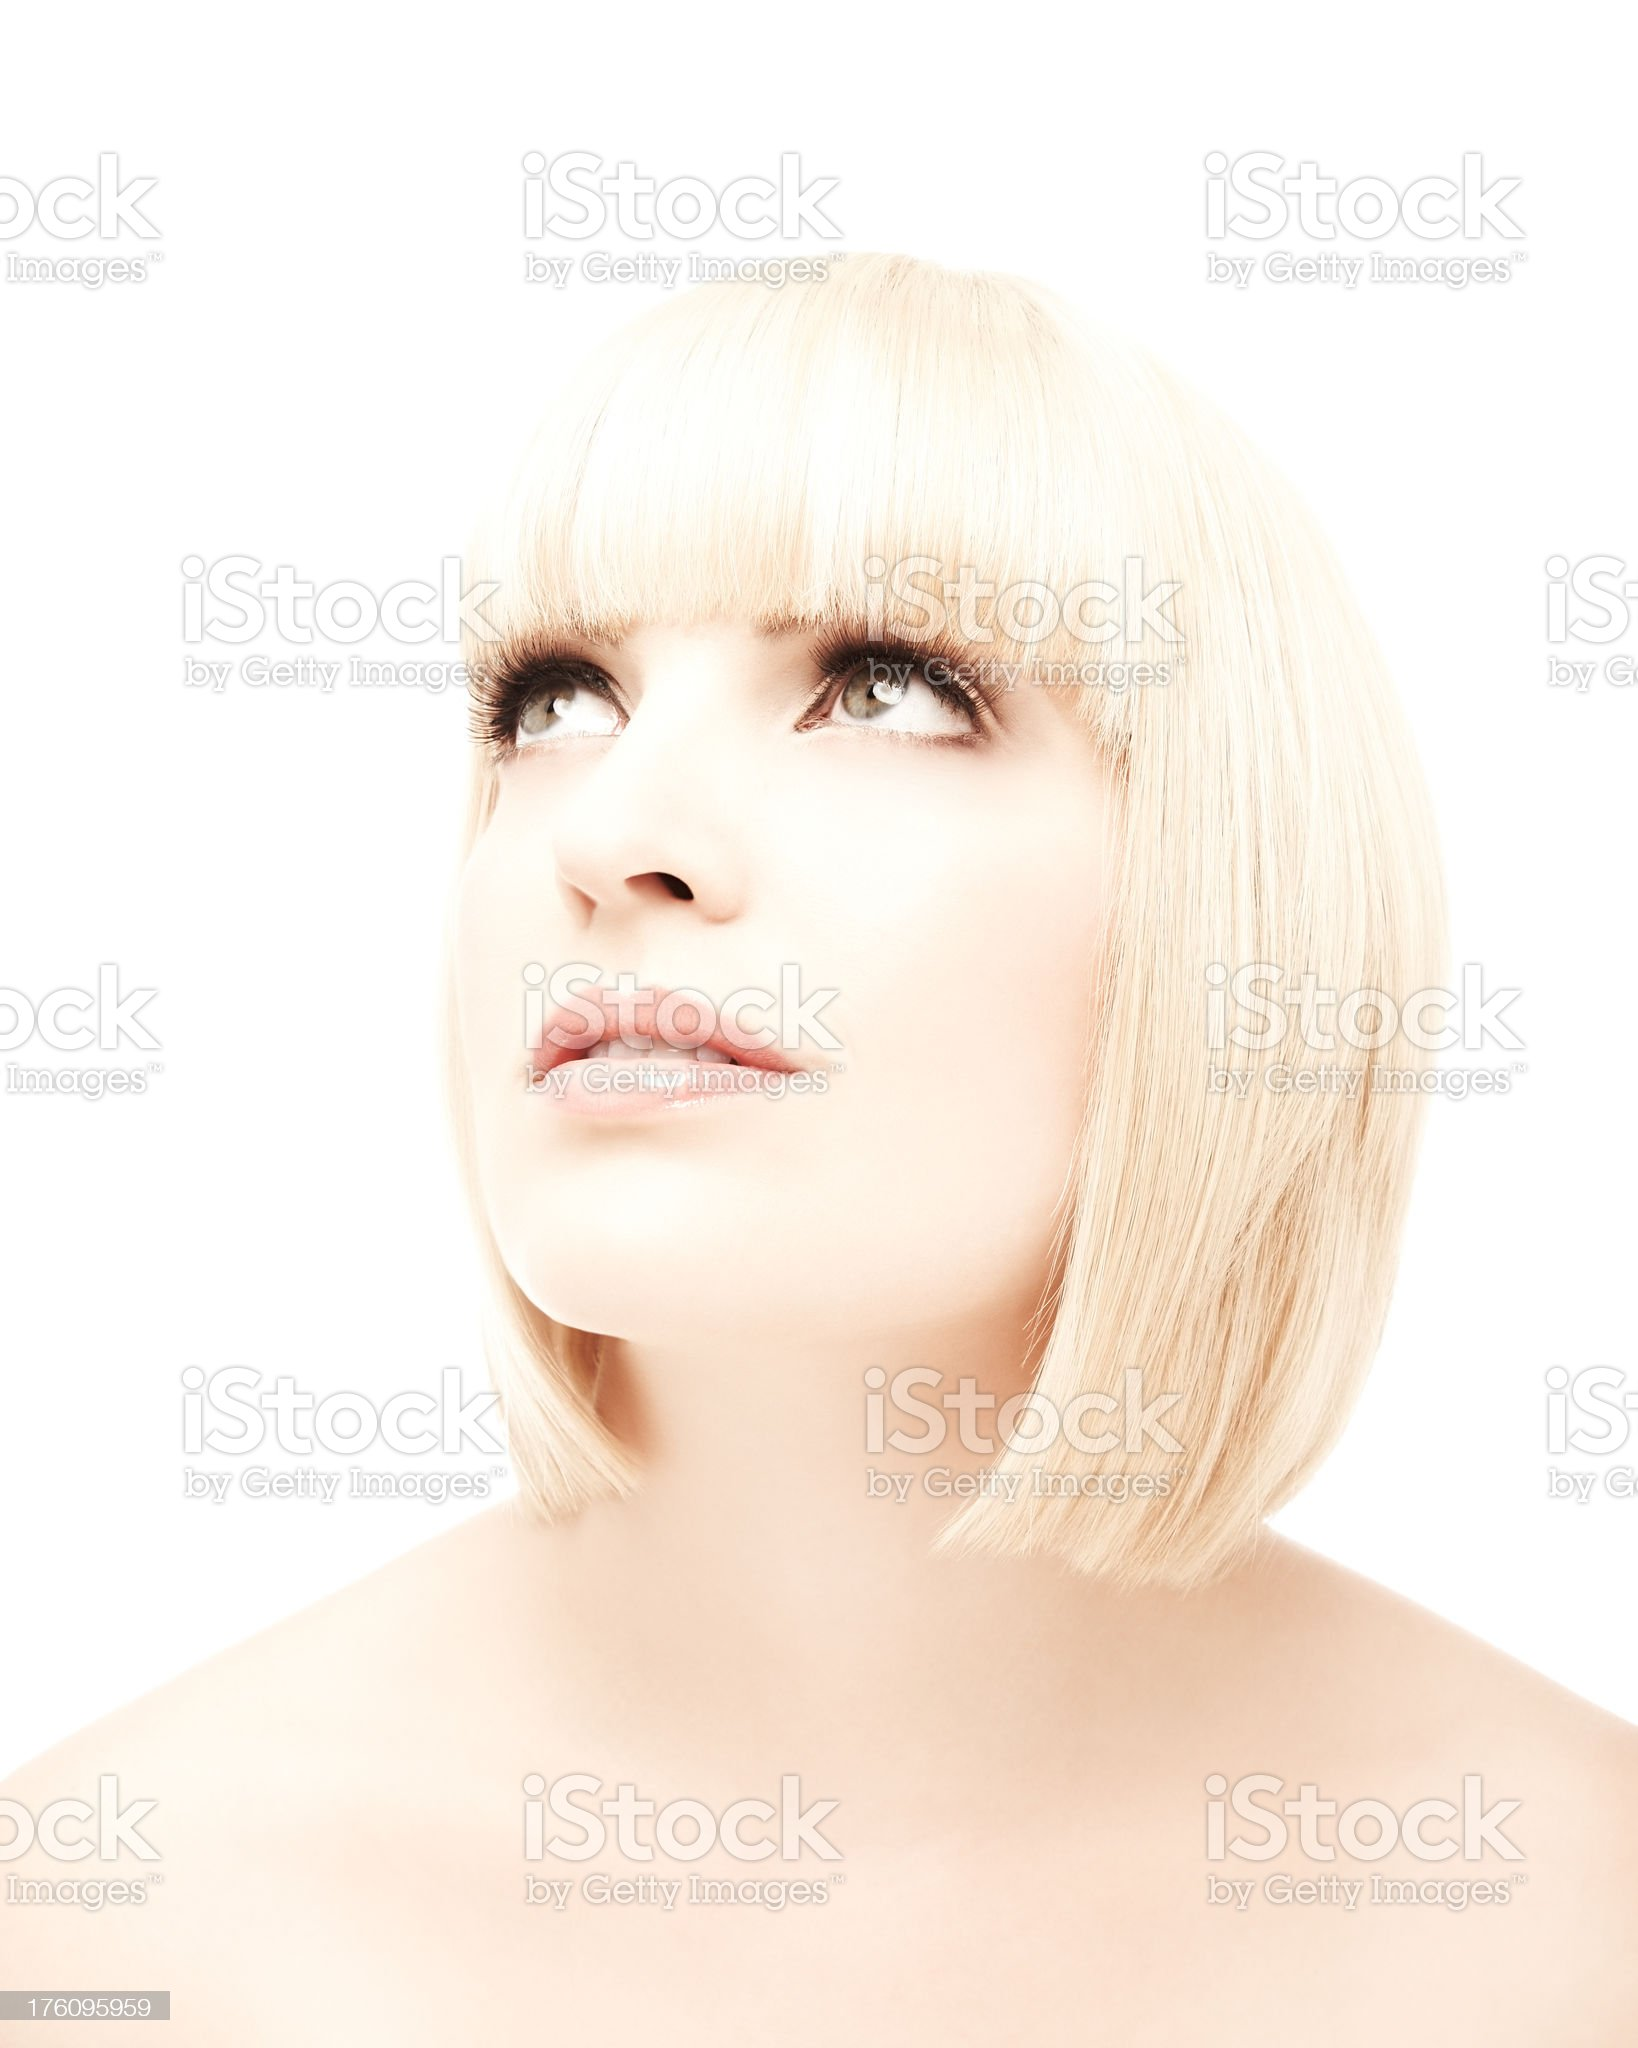 Woman Looking Up and Away royalty-free stock photo